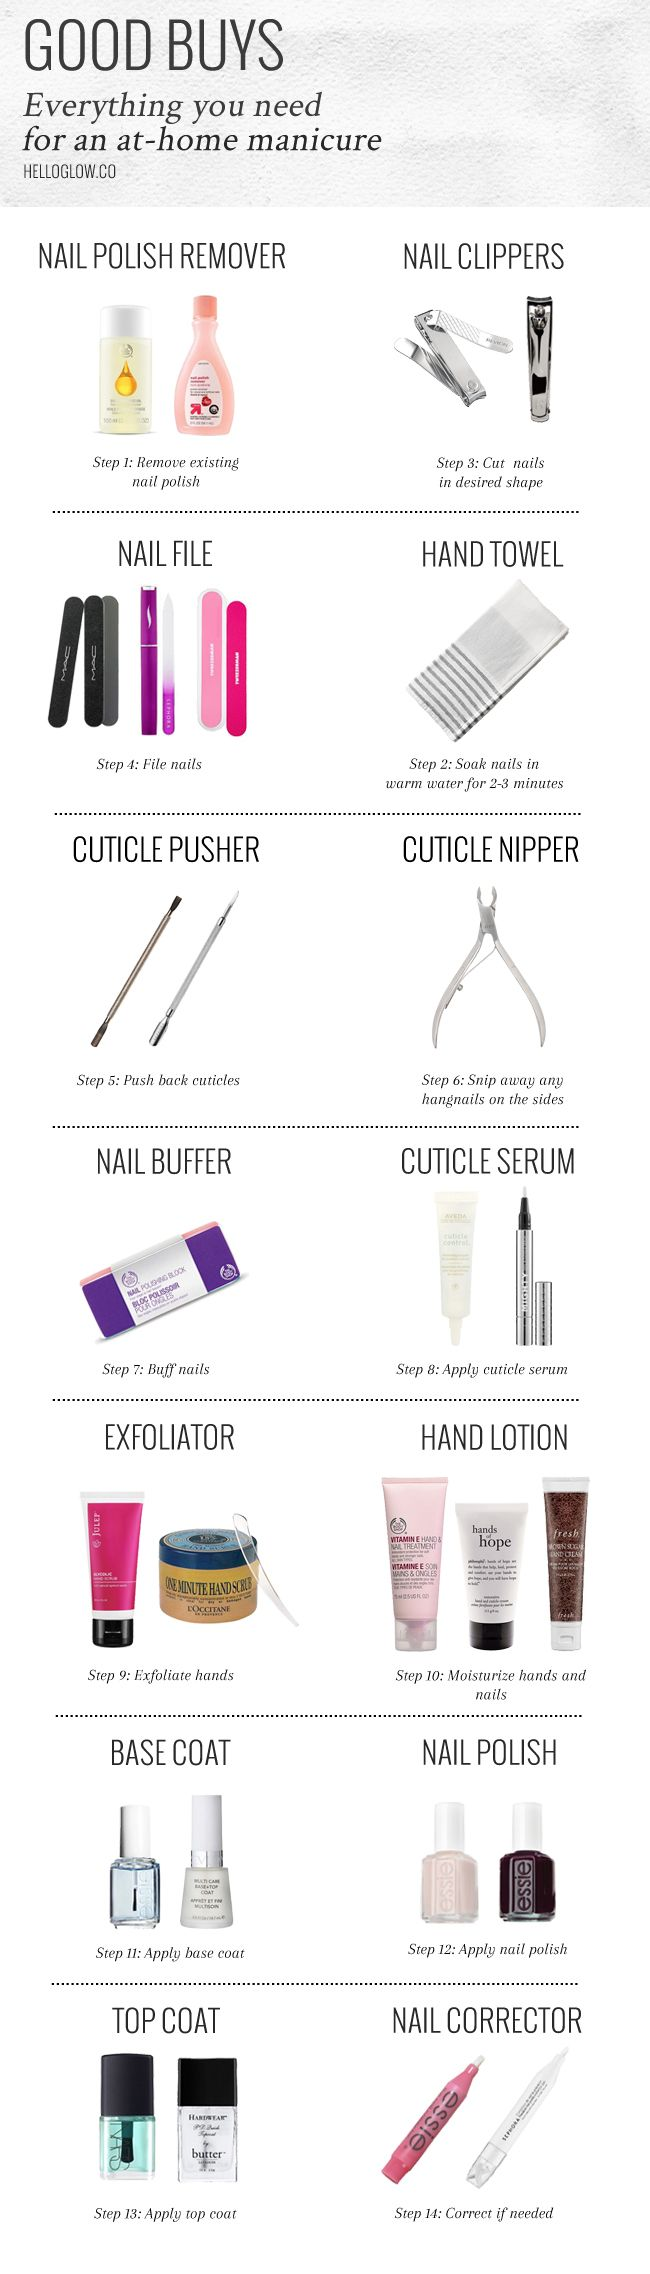 From nail files to polish removers, get the must-have home manicure supplies for a perfect DIY manicure.